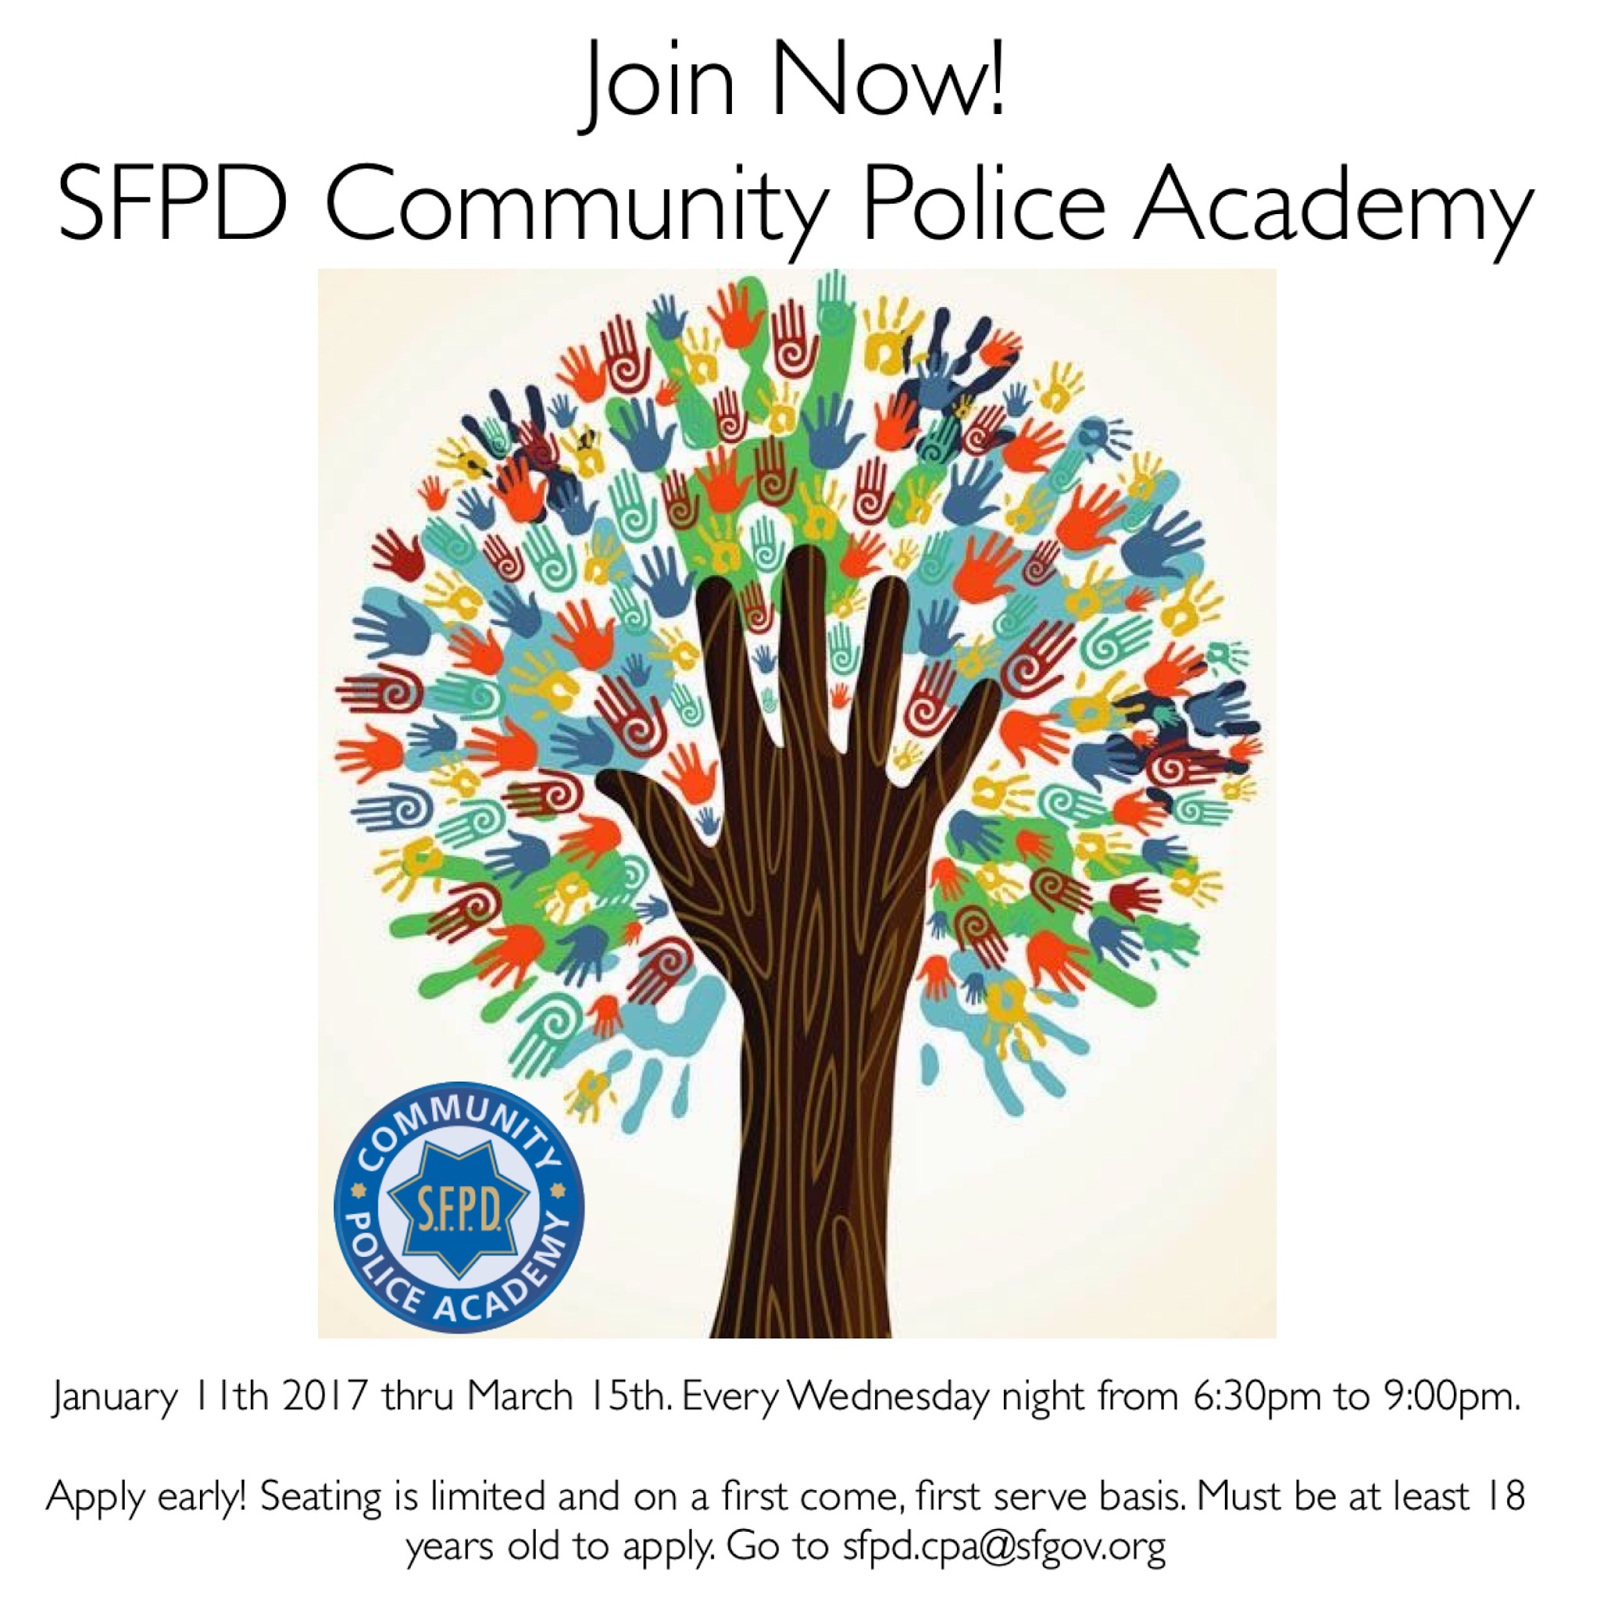 SFPD Community Police Academy: what is it? – Sunnyside